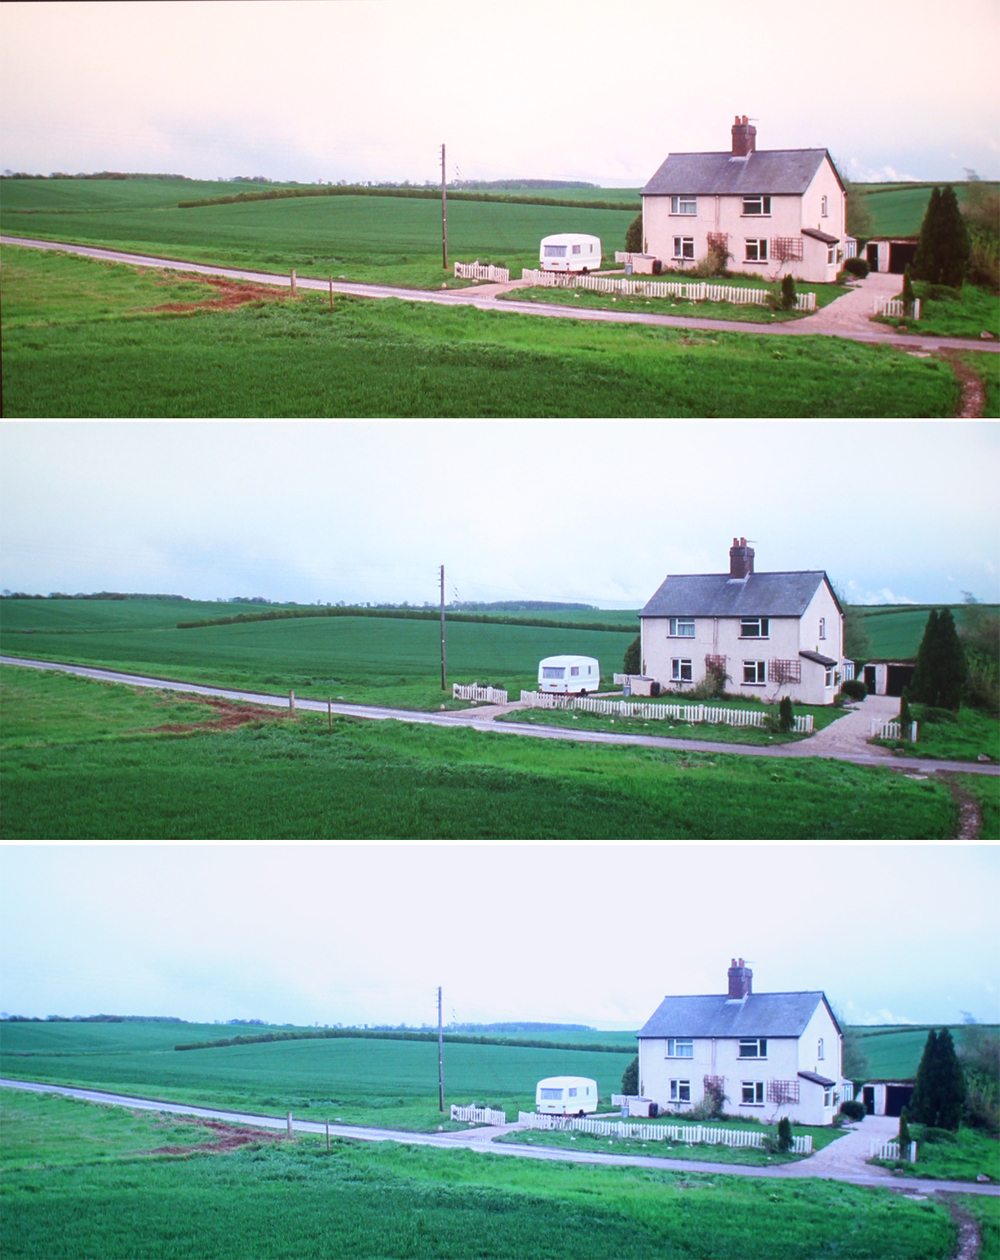 The same image of a house, with temperature adjusted from warmest (top) to coolest (bottom).